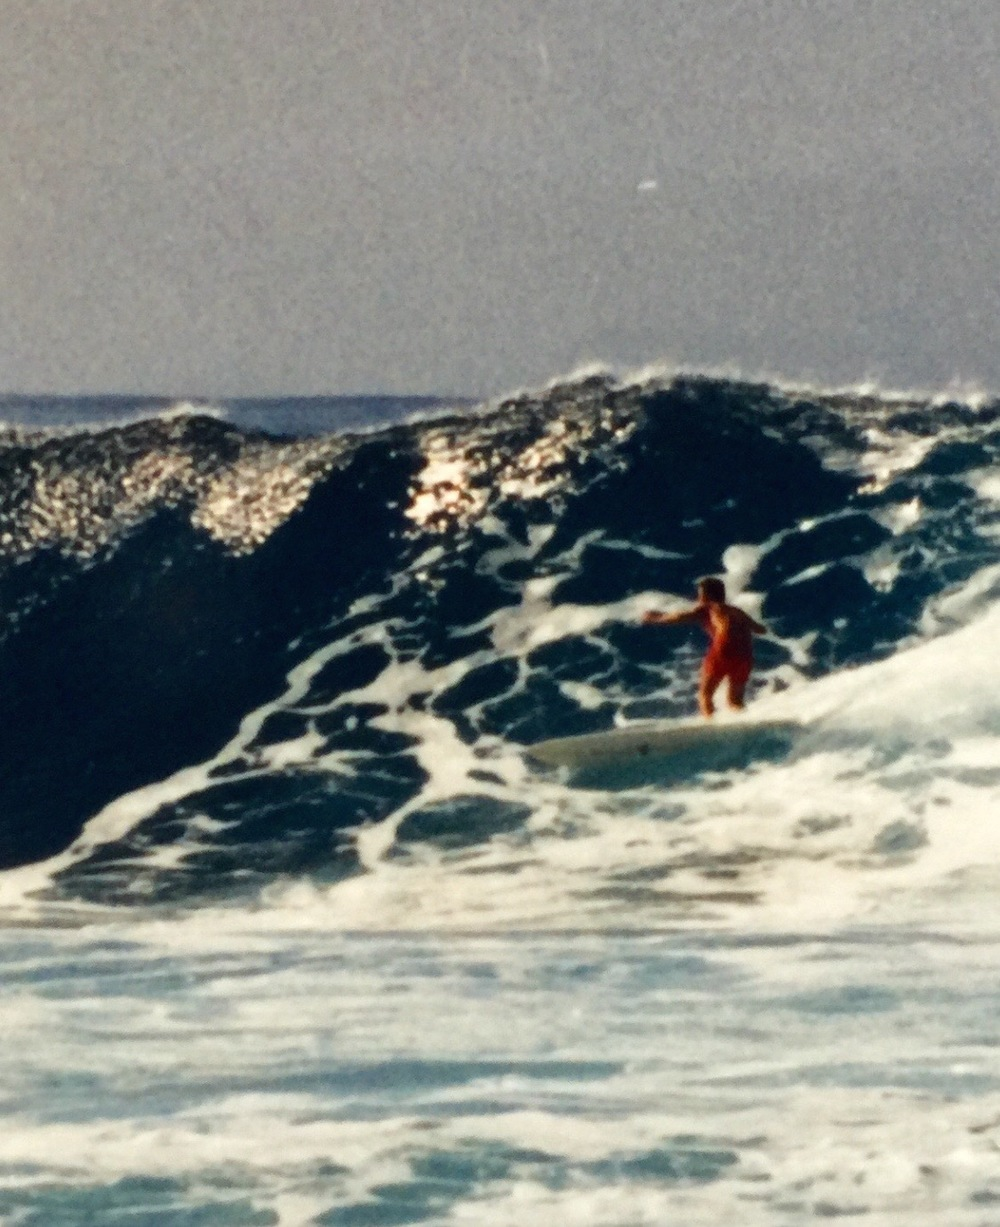 1996 - Makaha, Hawaii